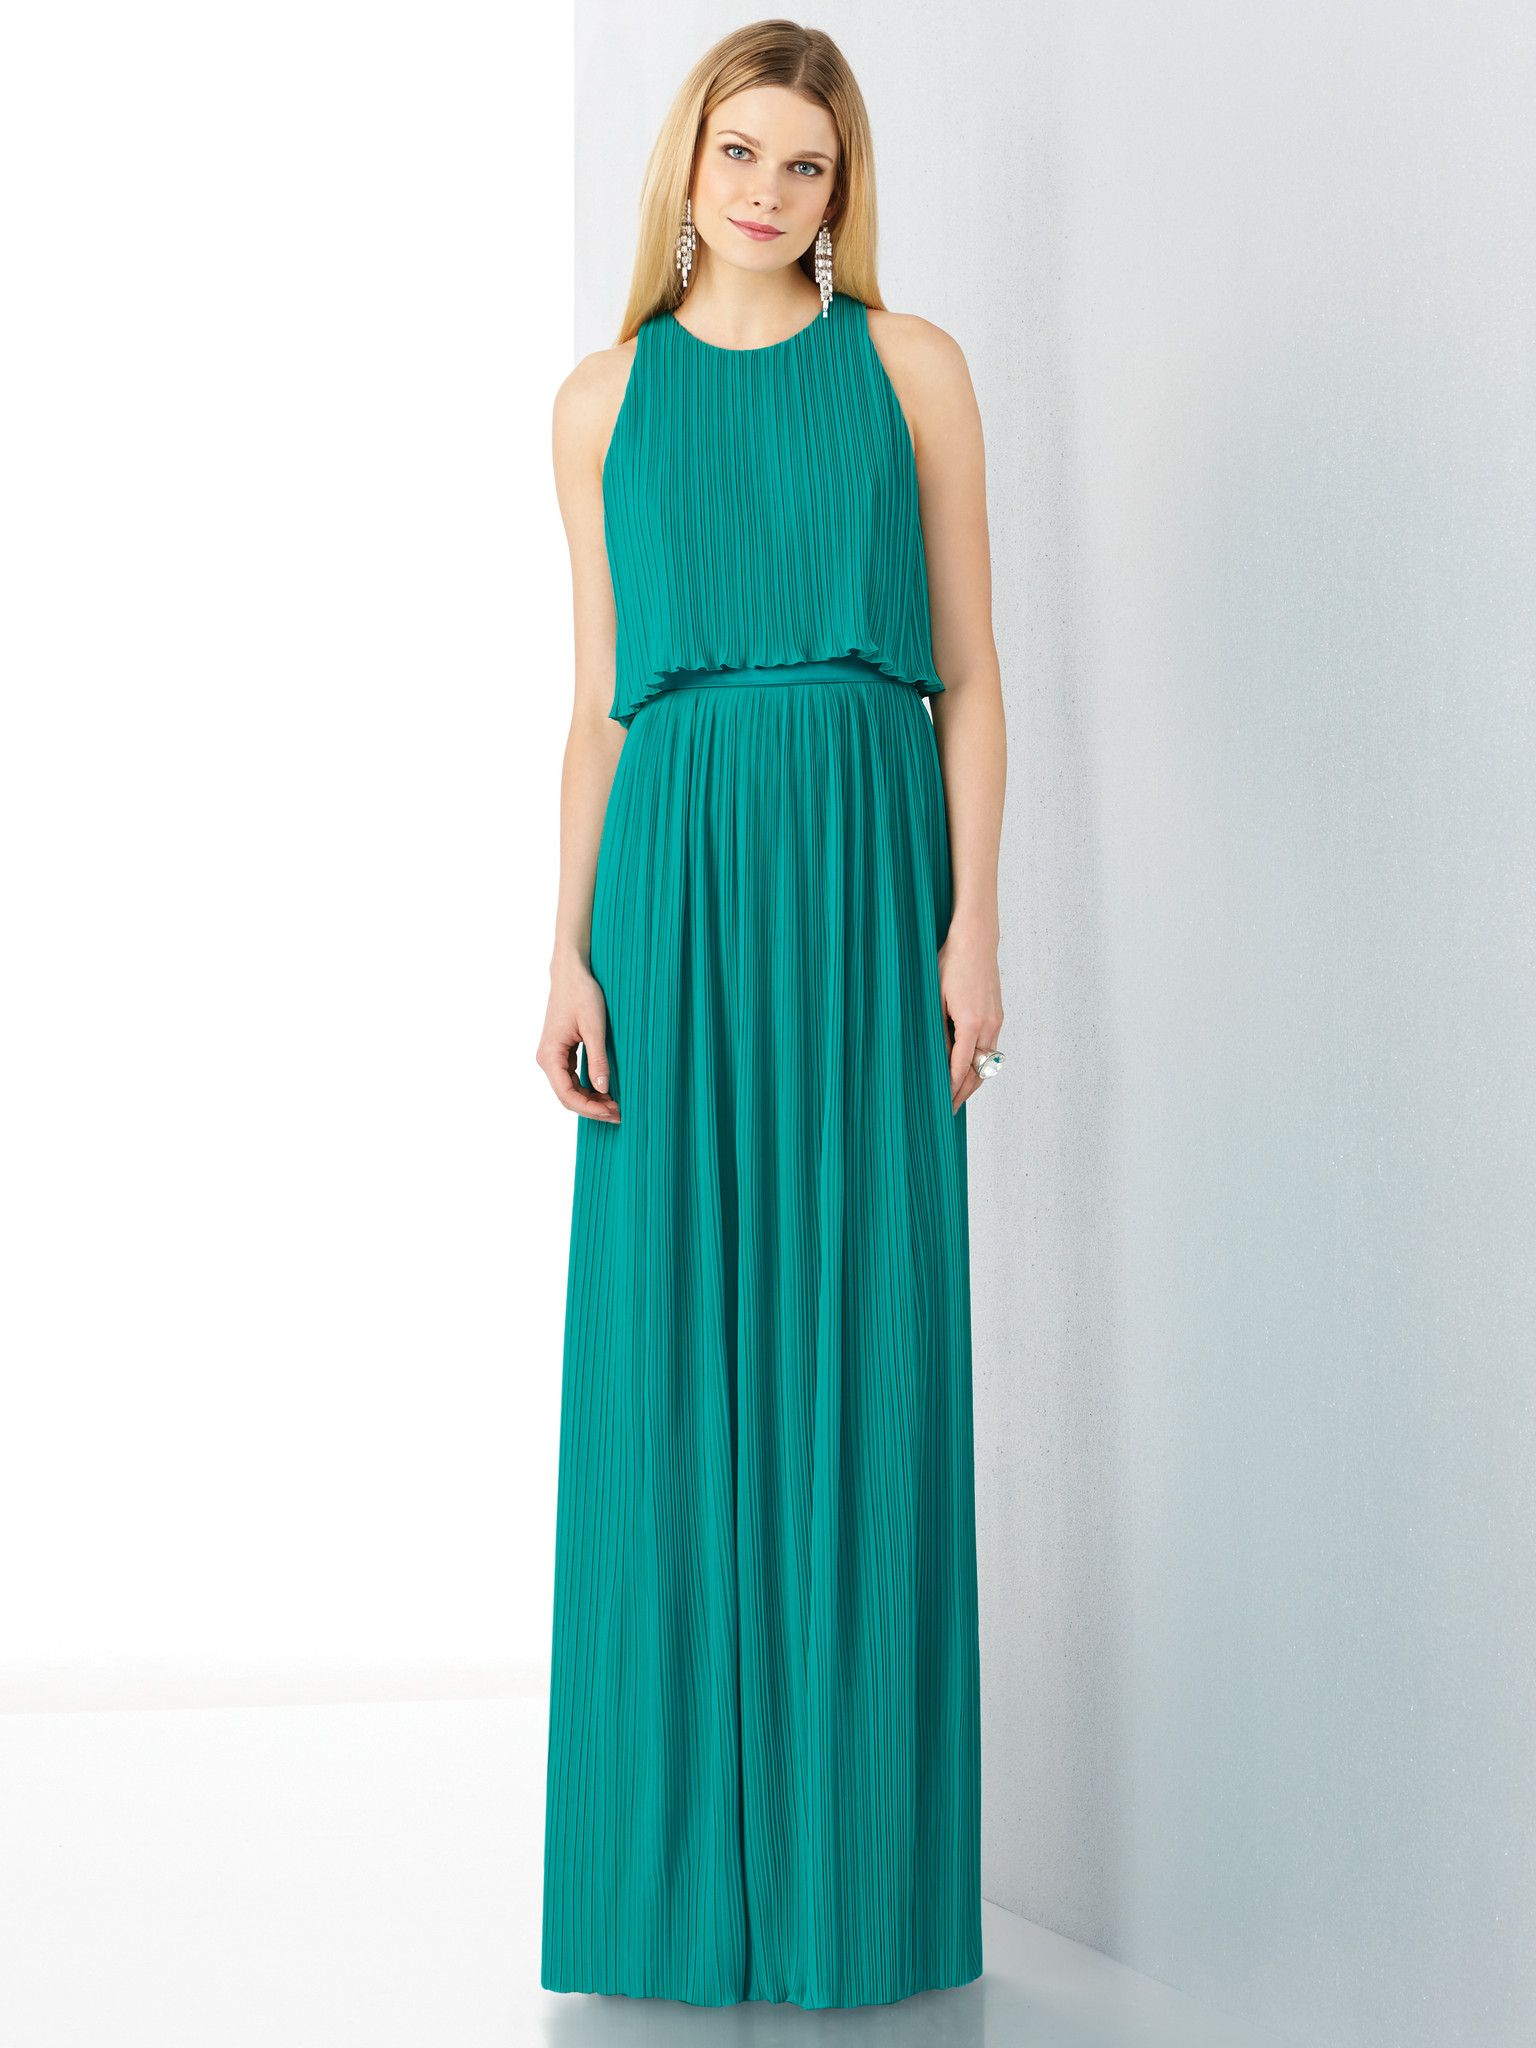 Heres a beautiful long chiffon bridesmaids dress after six by heres a beautiful long chiffon bridesmaids dress after six by the dessy collection is available ombrellifo Choice Image